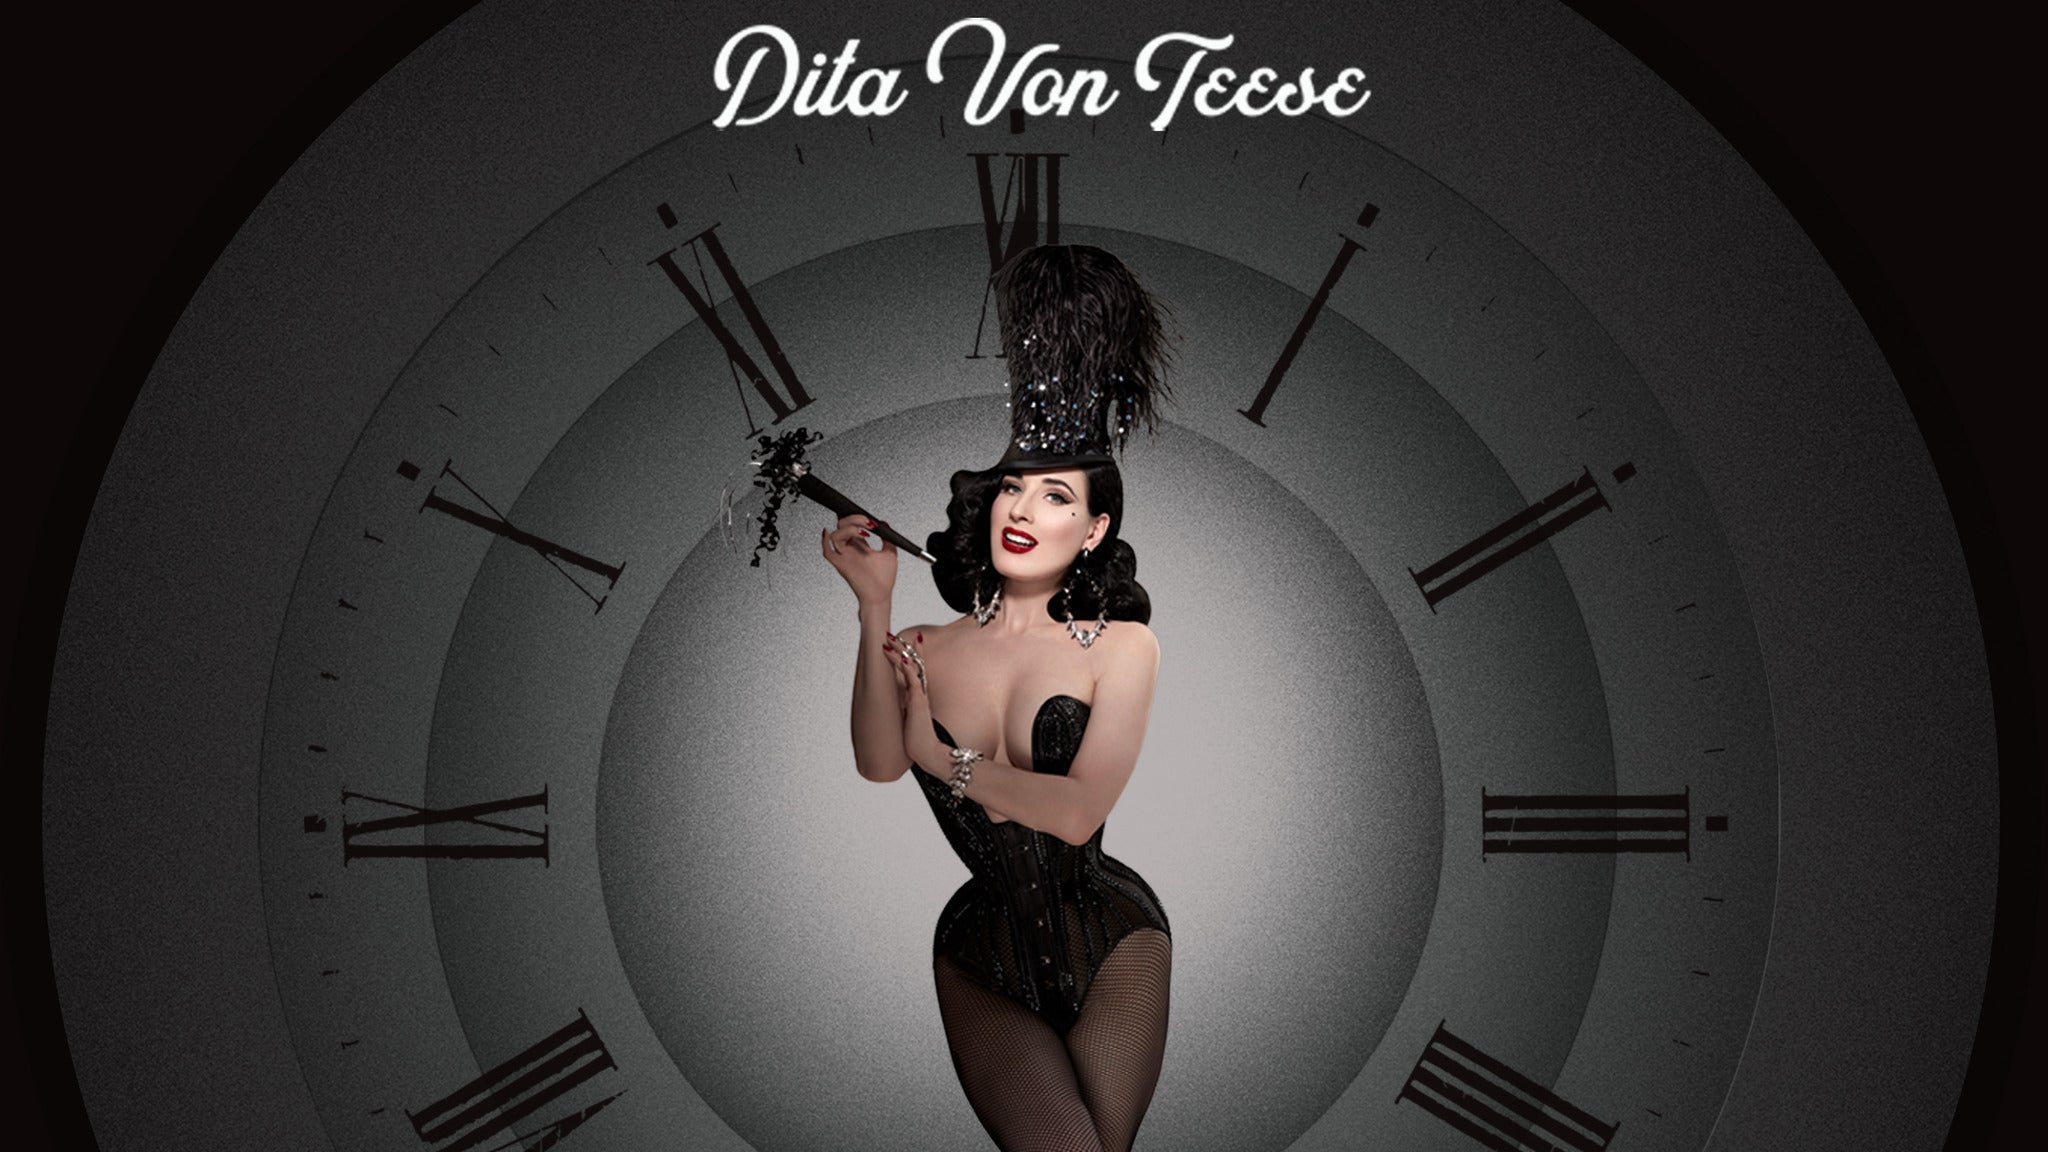 Dita Von Teese's 'The Art Of The Teese' Burlesque Revue Seating Plans